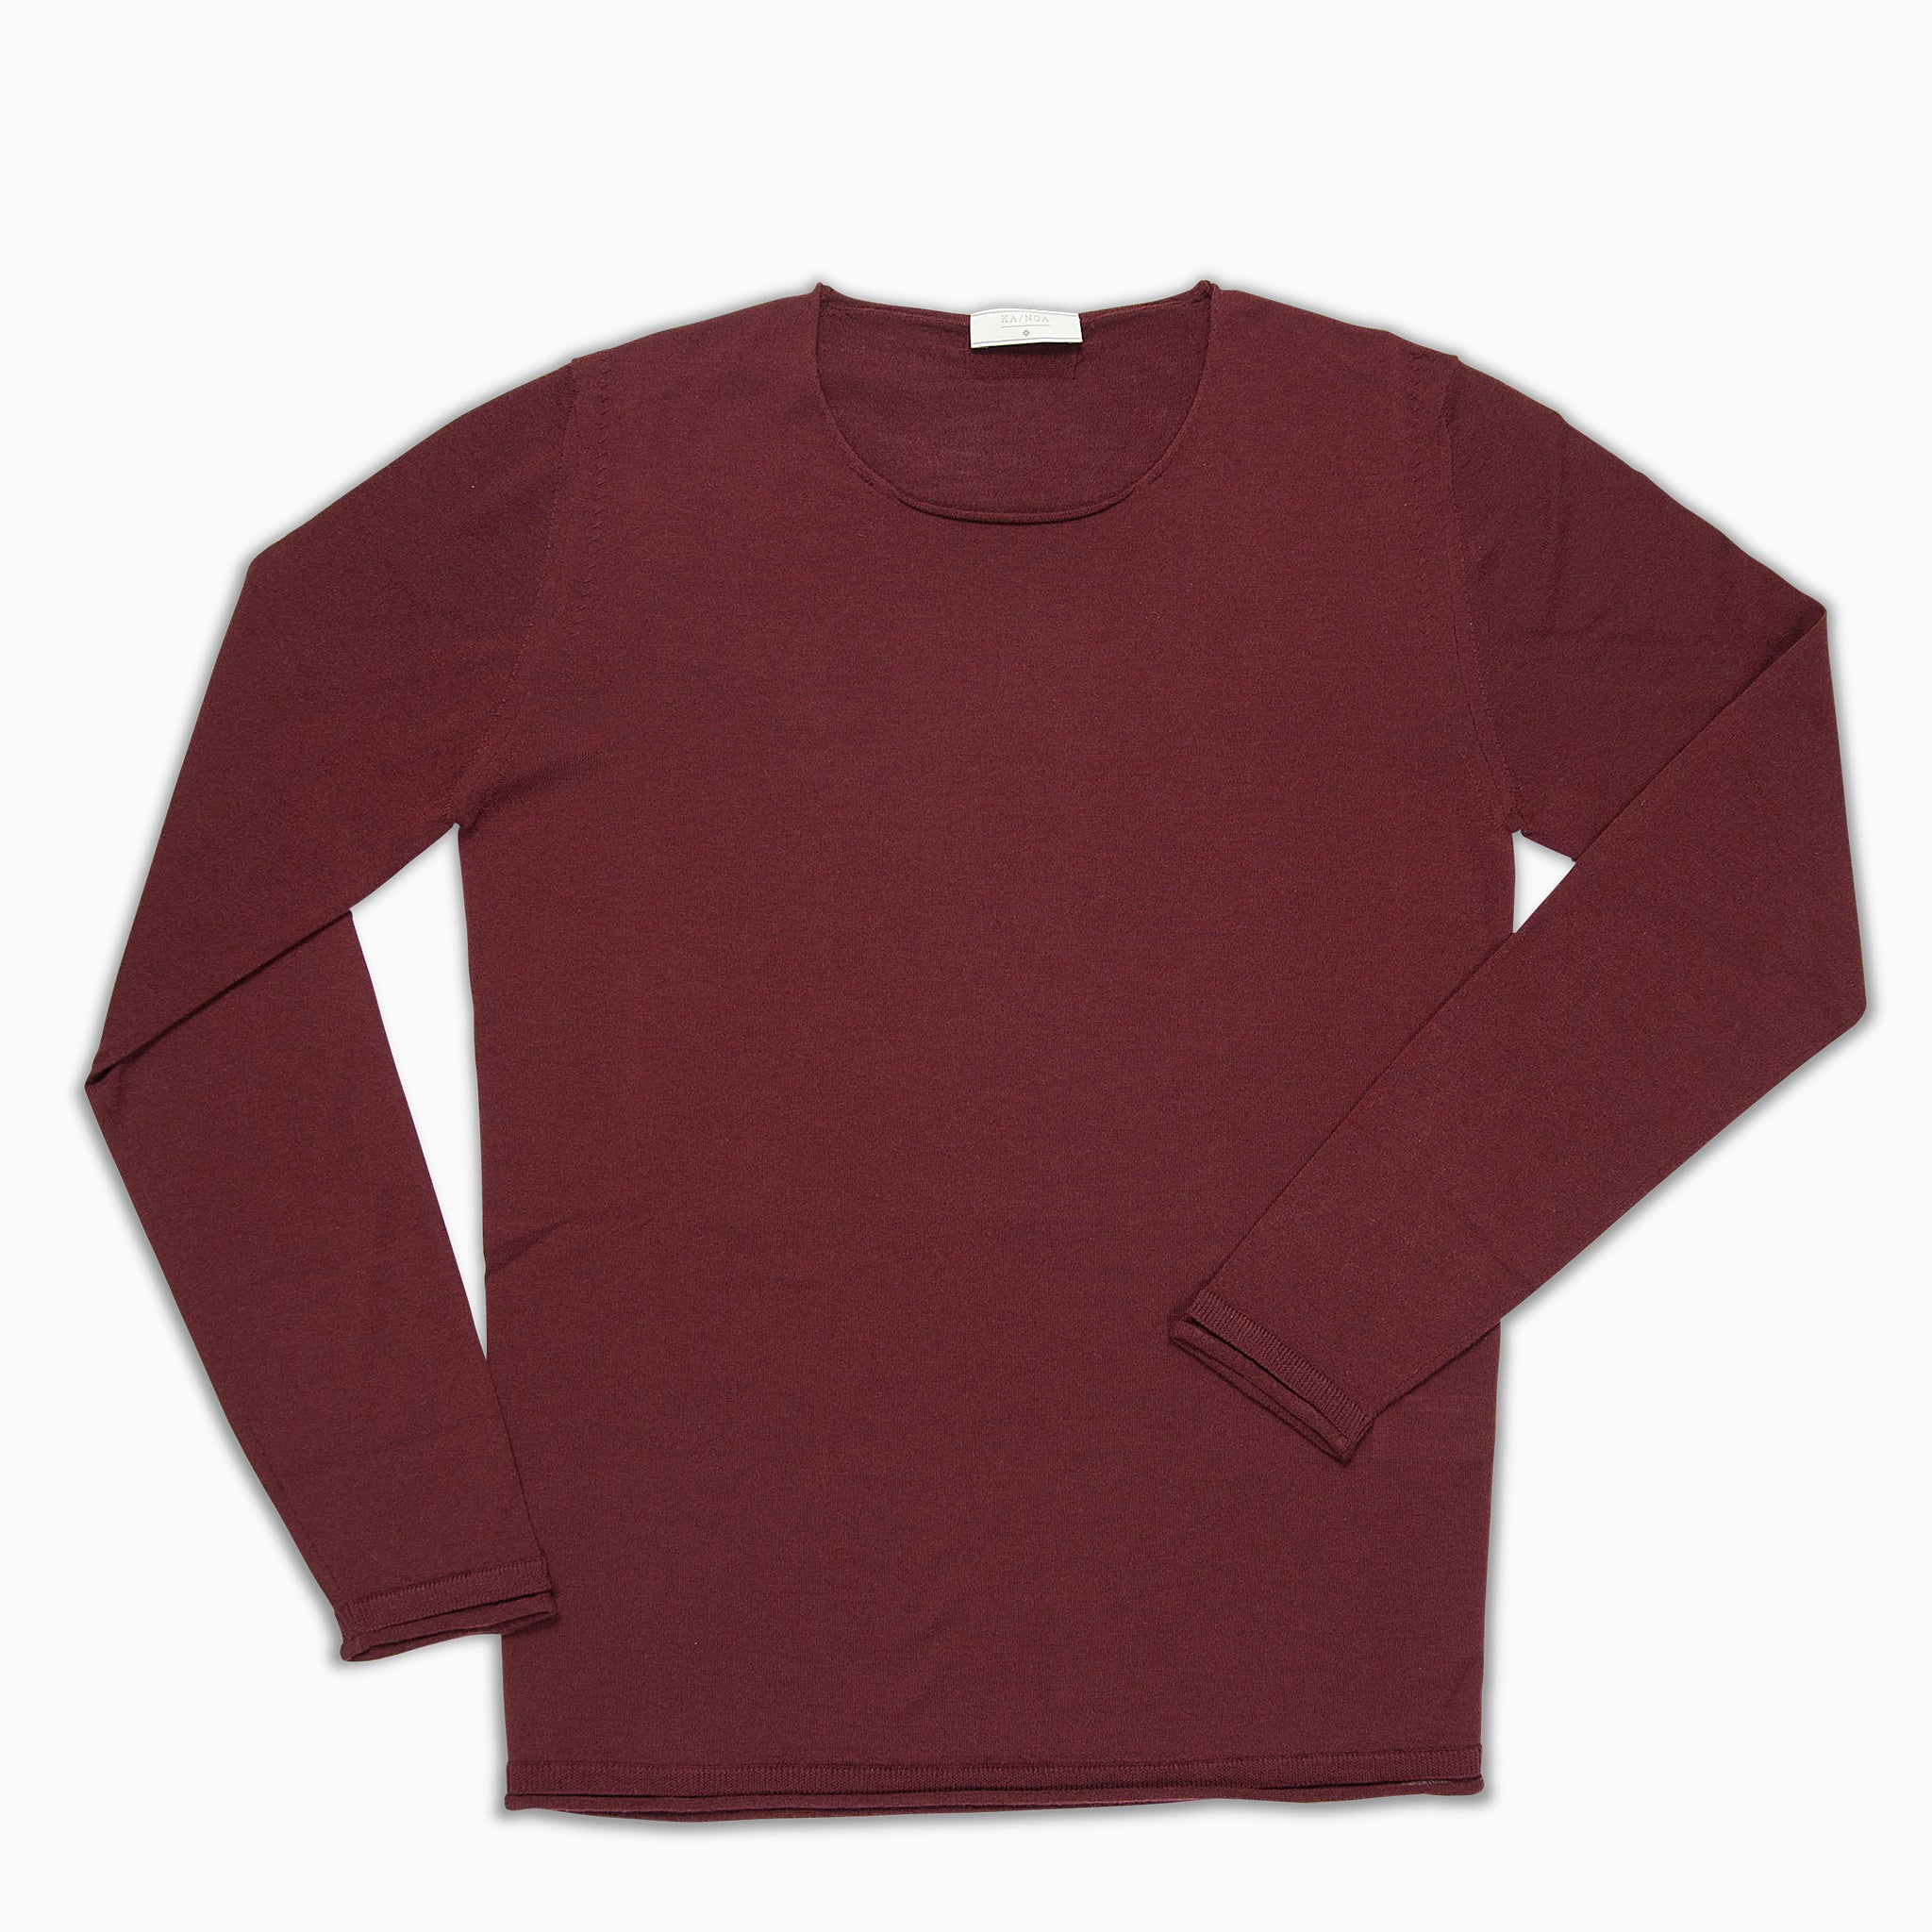 Andreieu crew-neck jumper Superfine Merino Wool (Burgundi)